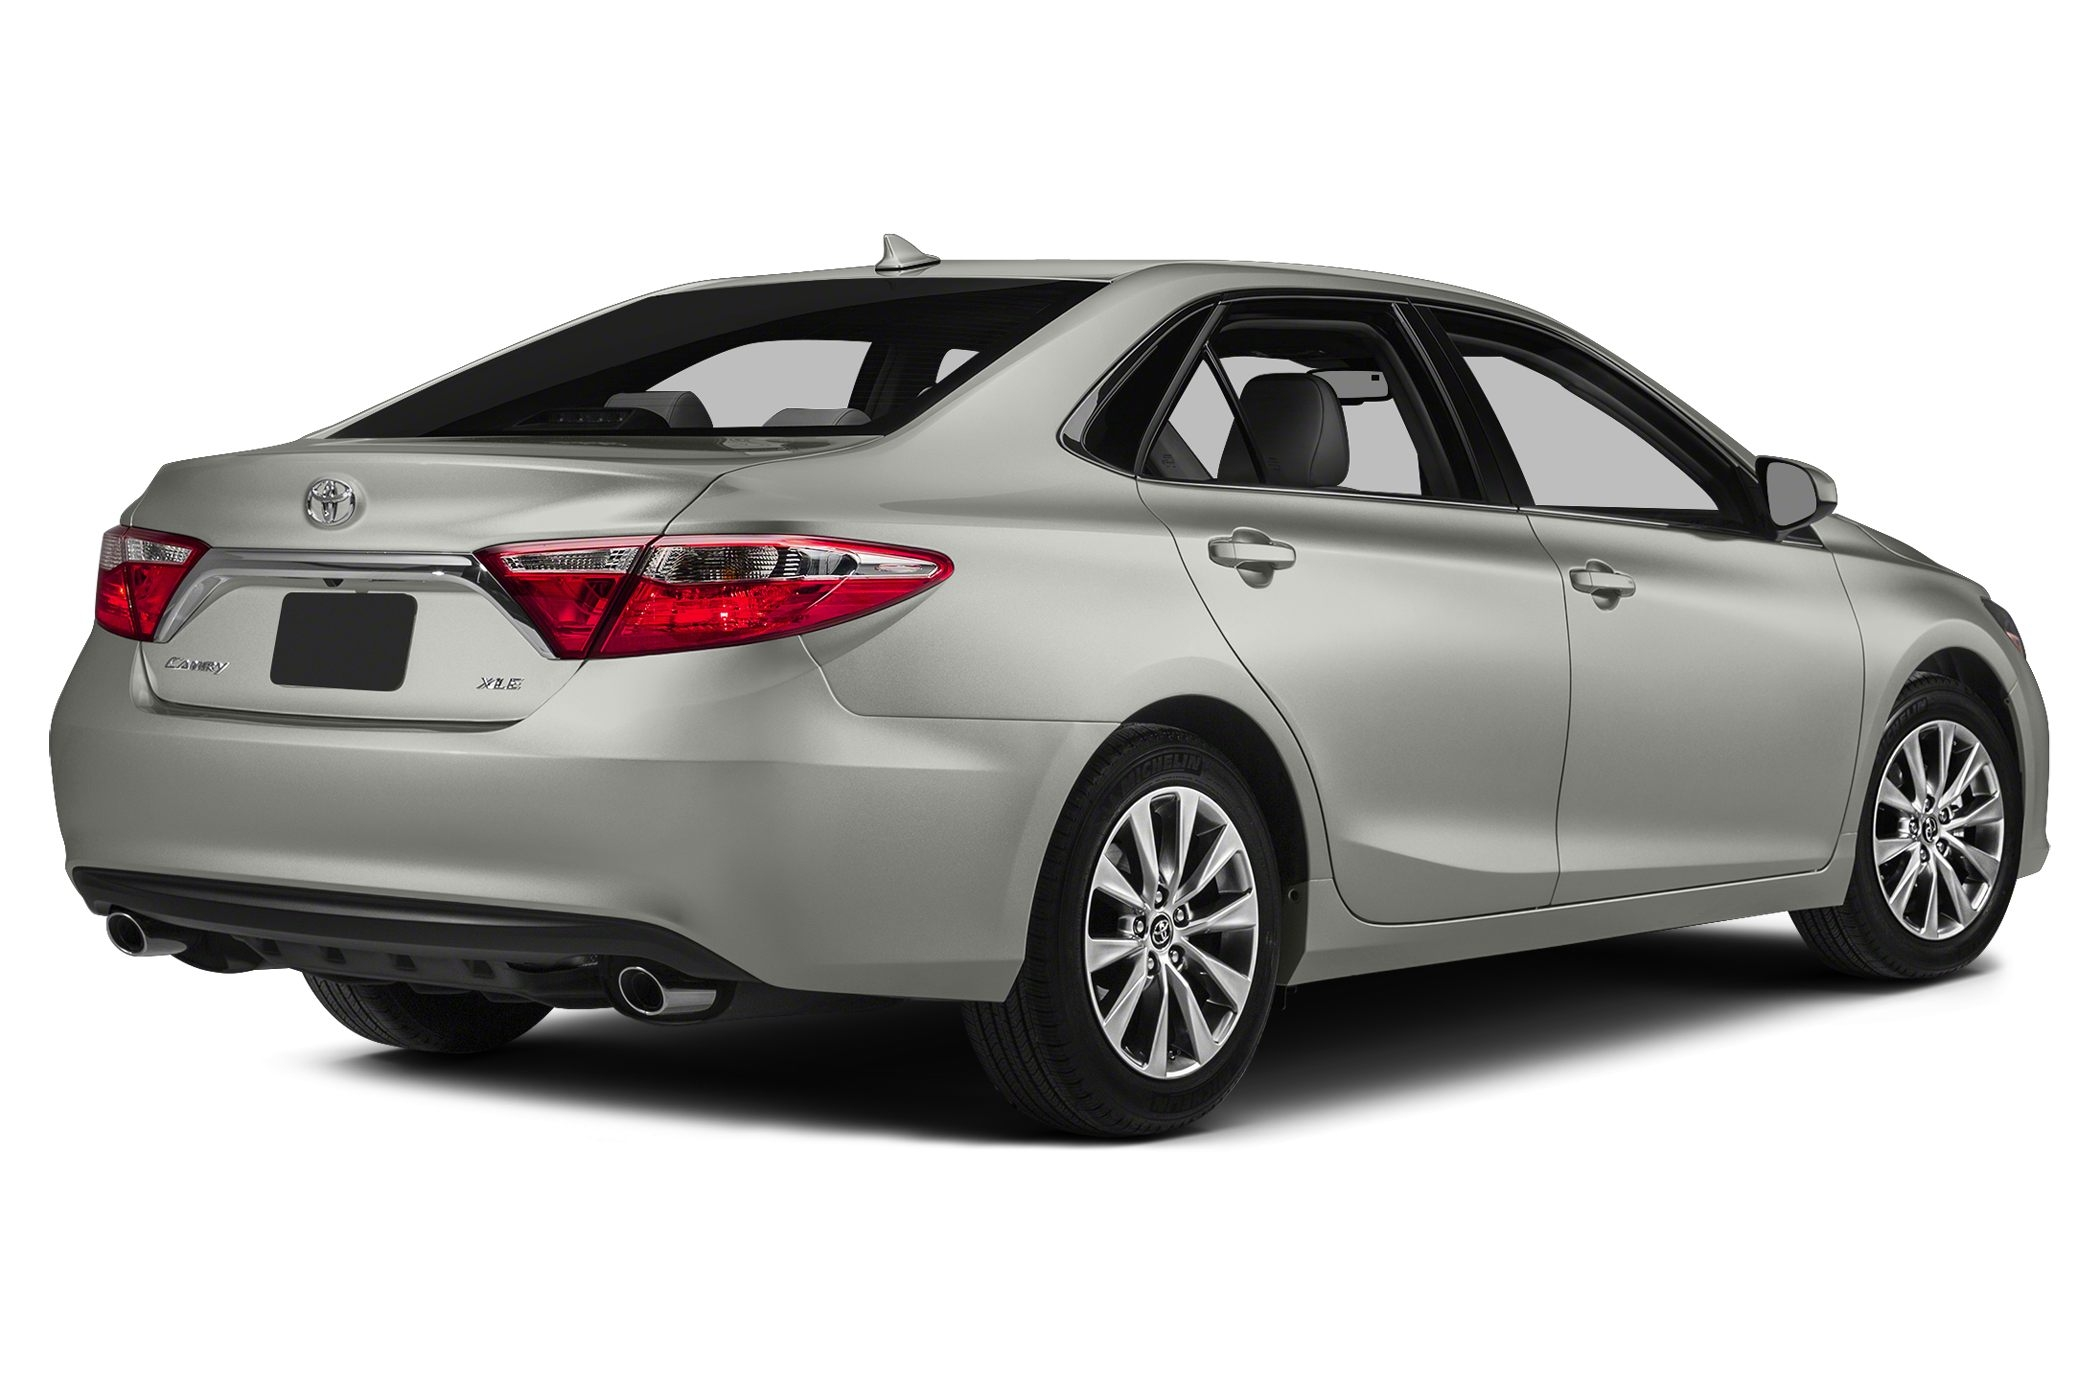 2015 toyota camry price photos reviews amp features 2015 toyota camry invoice price